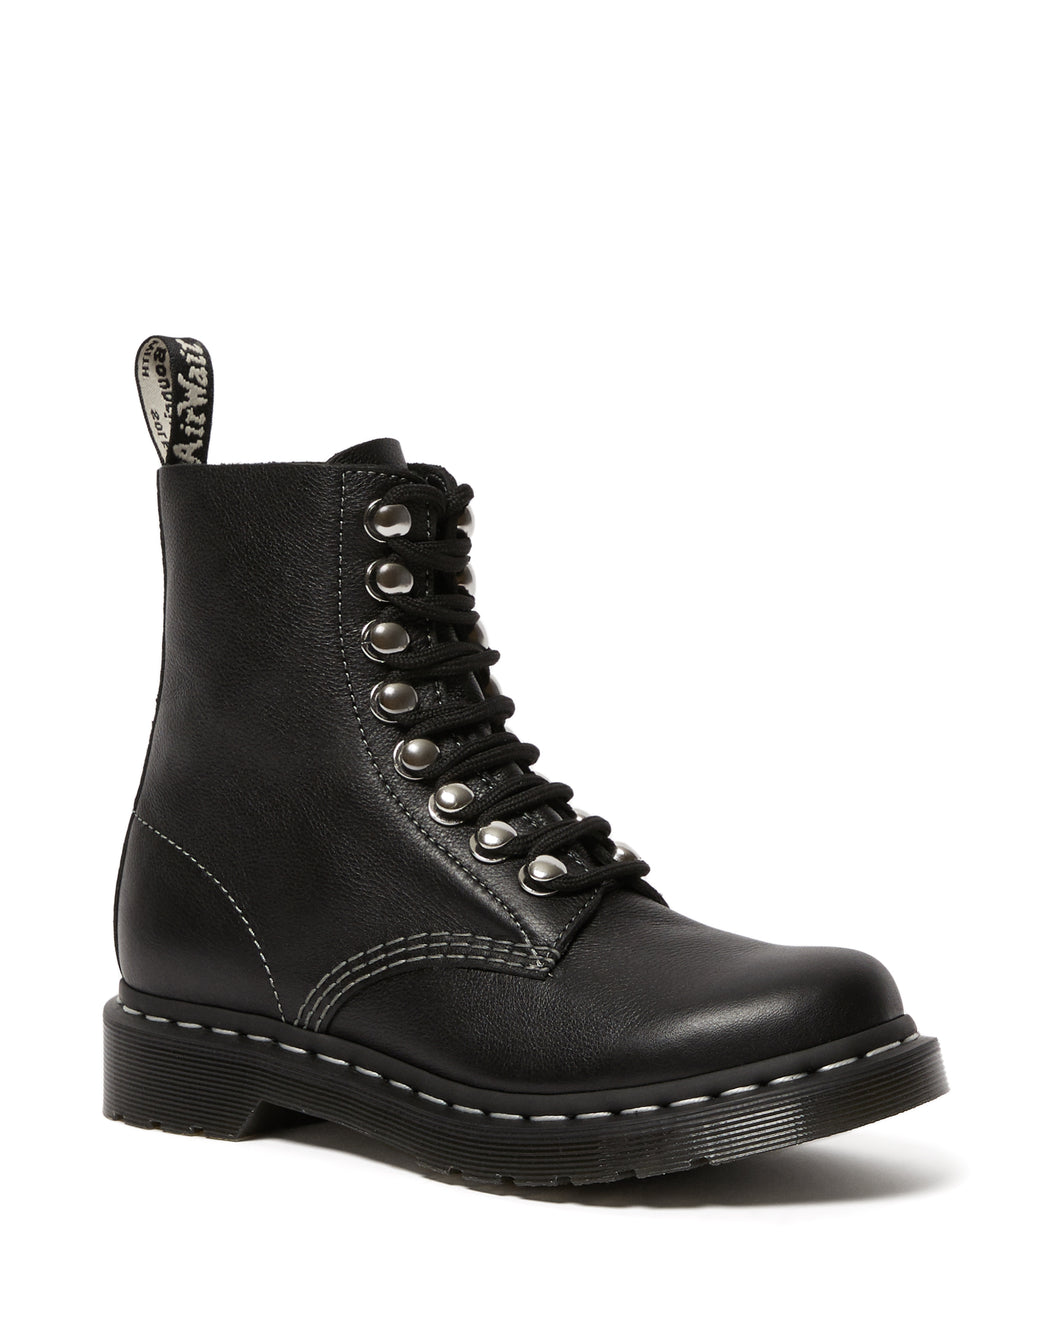 1460 Pascal Women's Hardware Boot